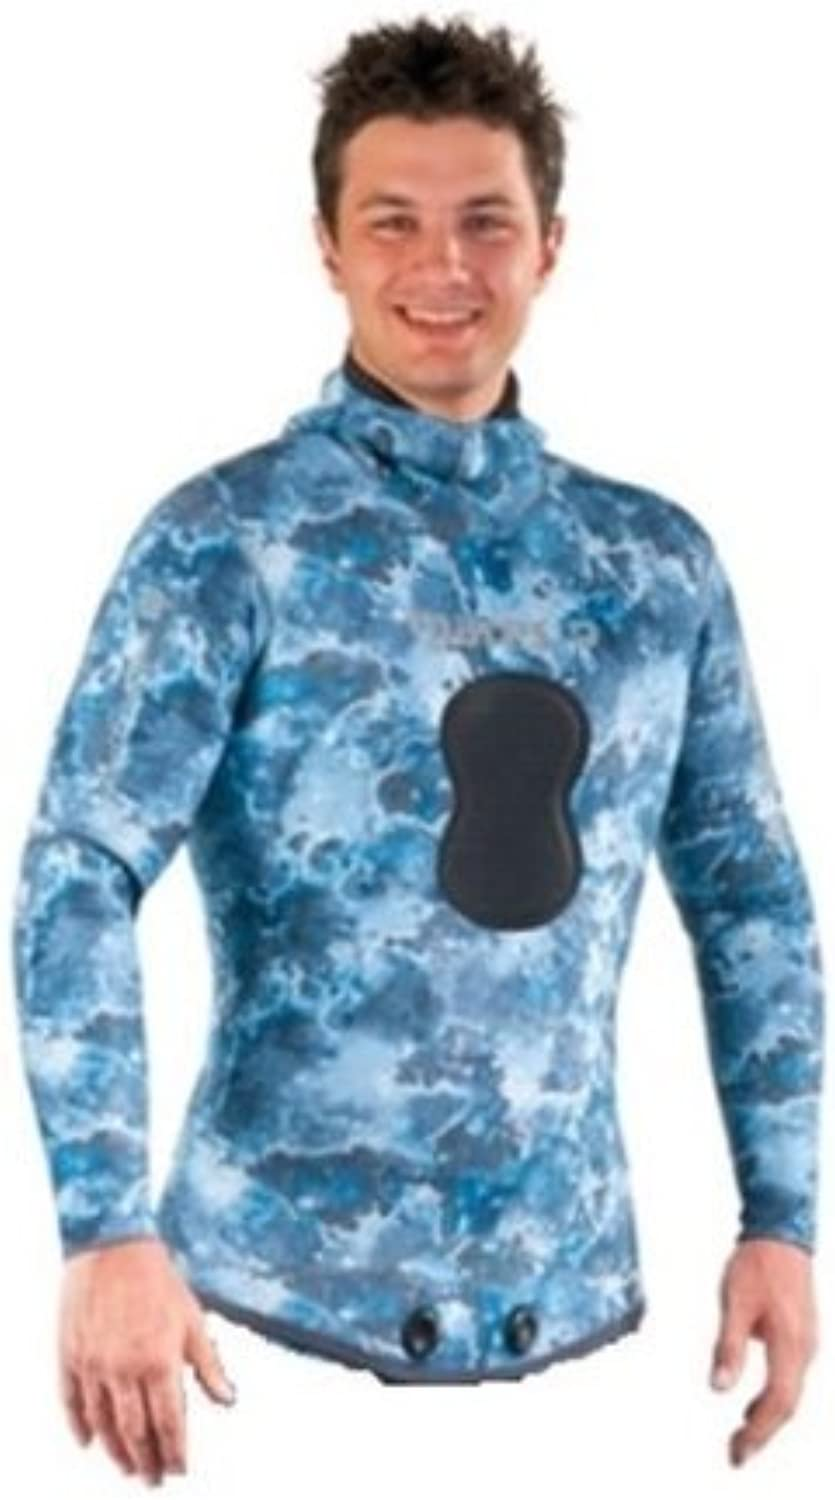 Mares Pure Instinct 3mm Spearfishing Freediving Wetsuit Jacket, blueee Camo, S7 XXLarge